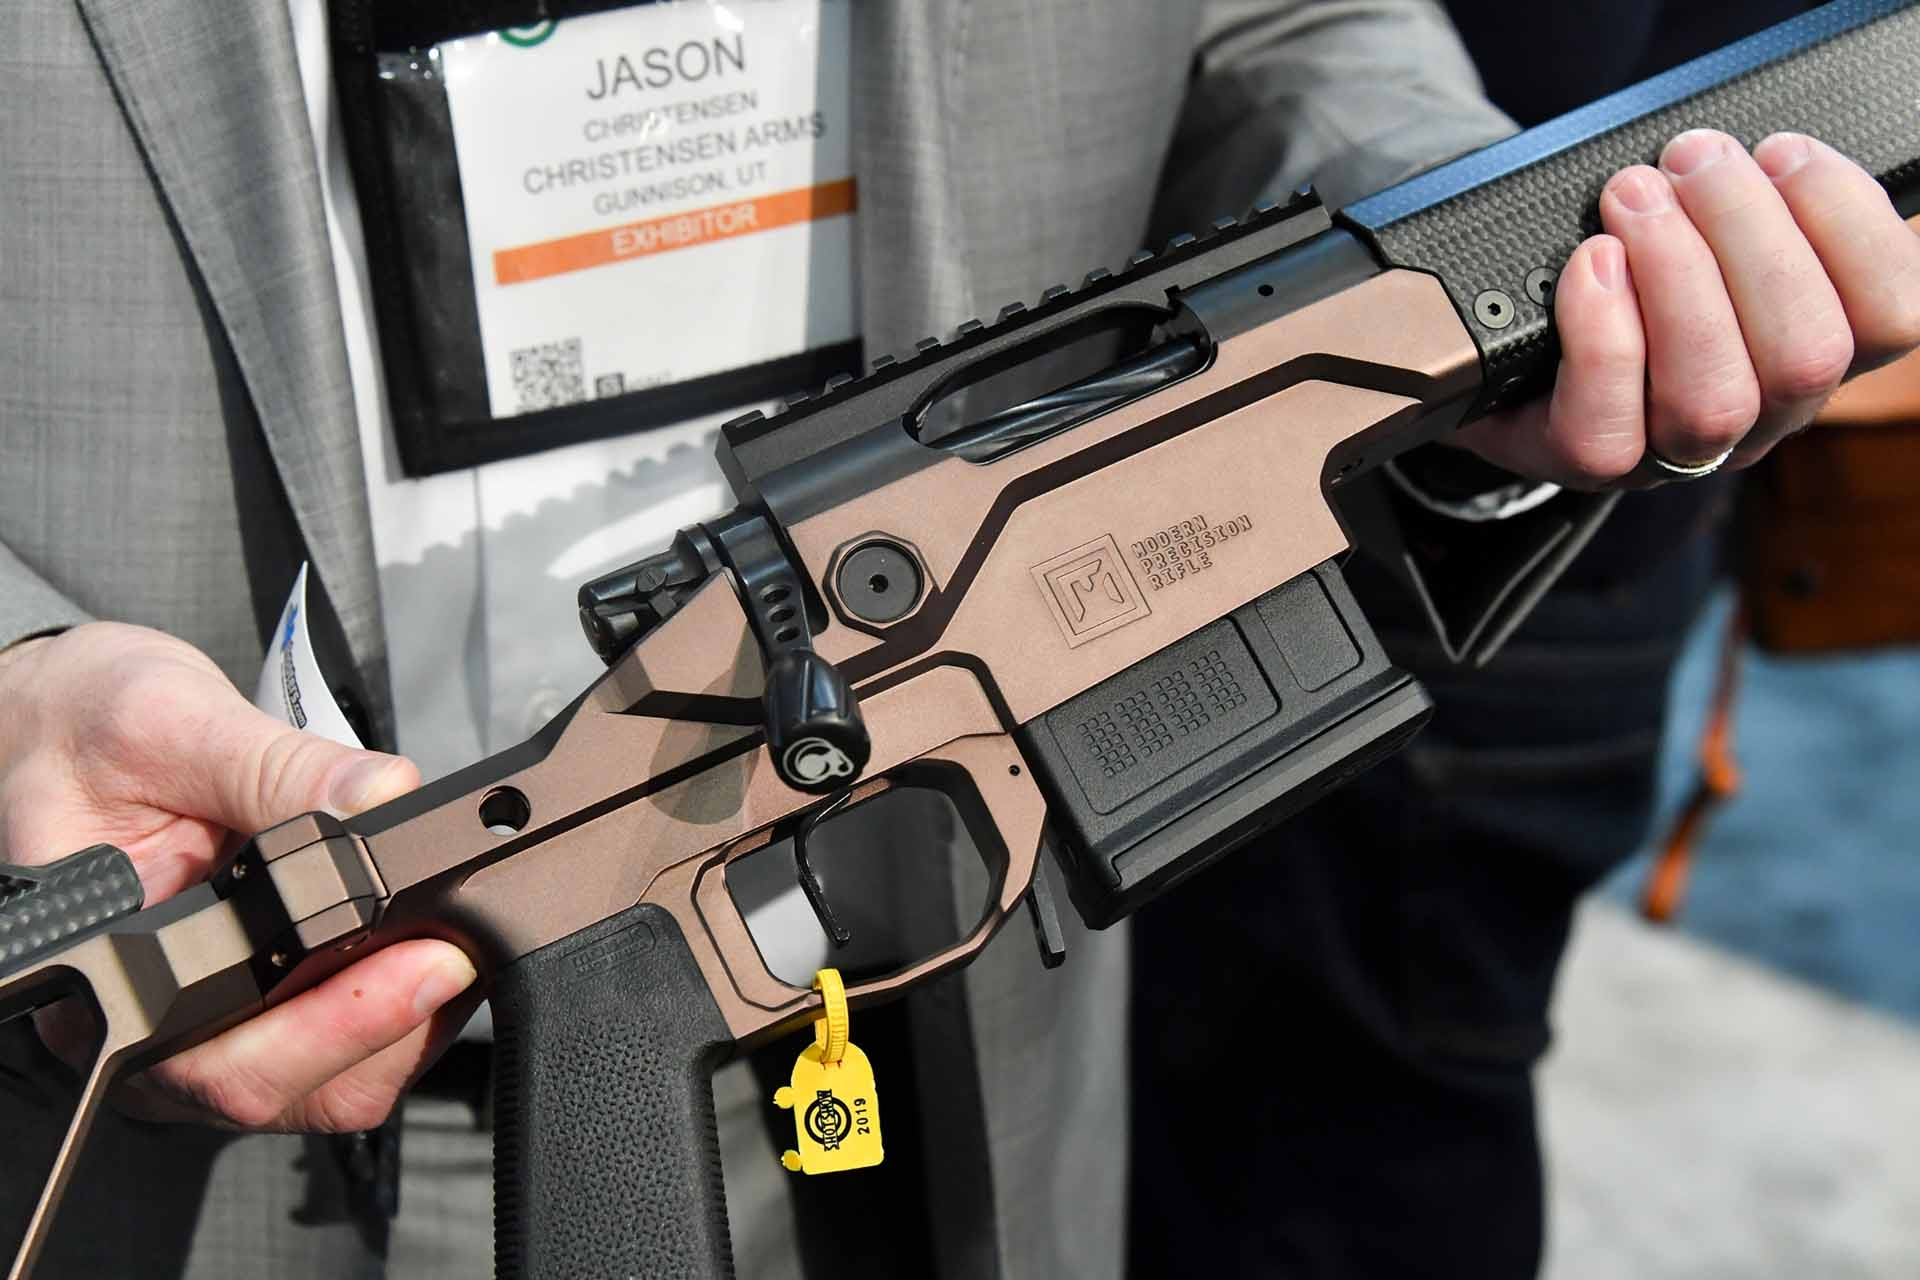 The Match-type trigger of the Christensen Arms MPR rifle